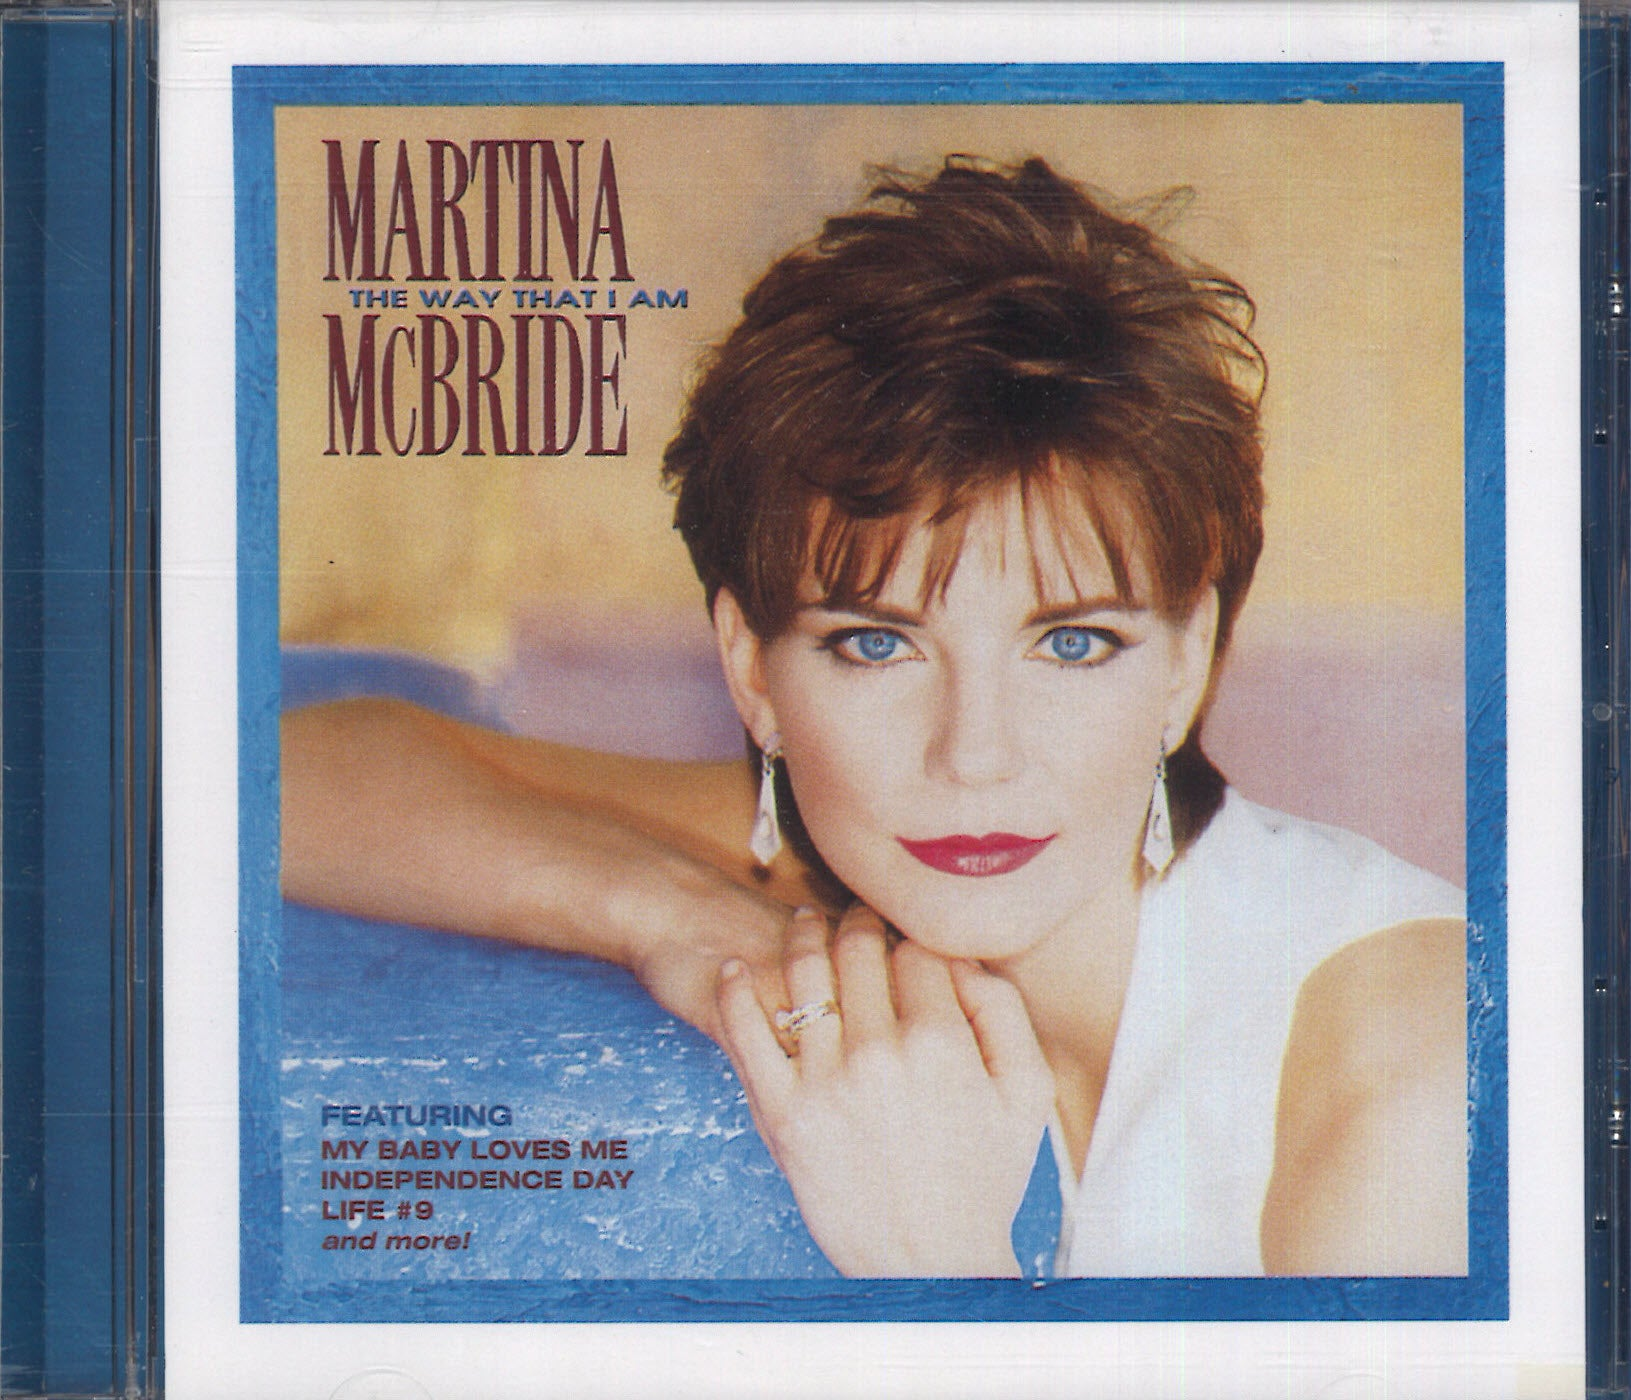 Martina Mcbride The Way That I Am